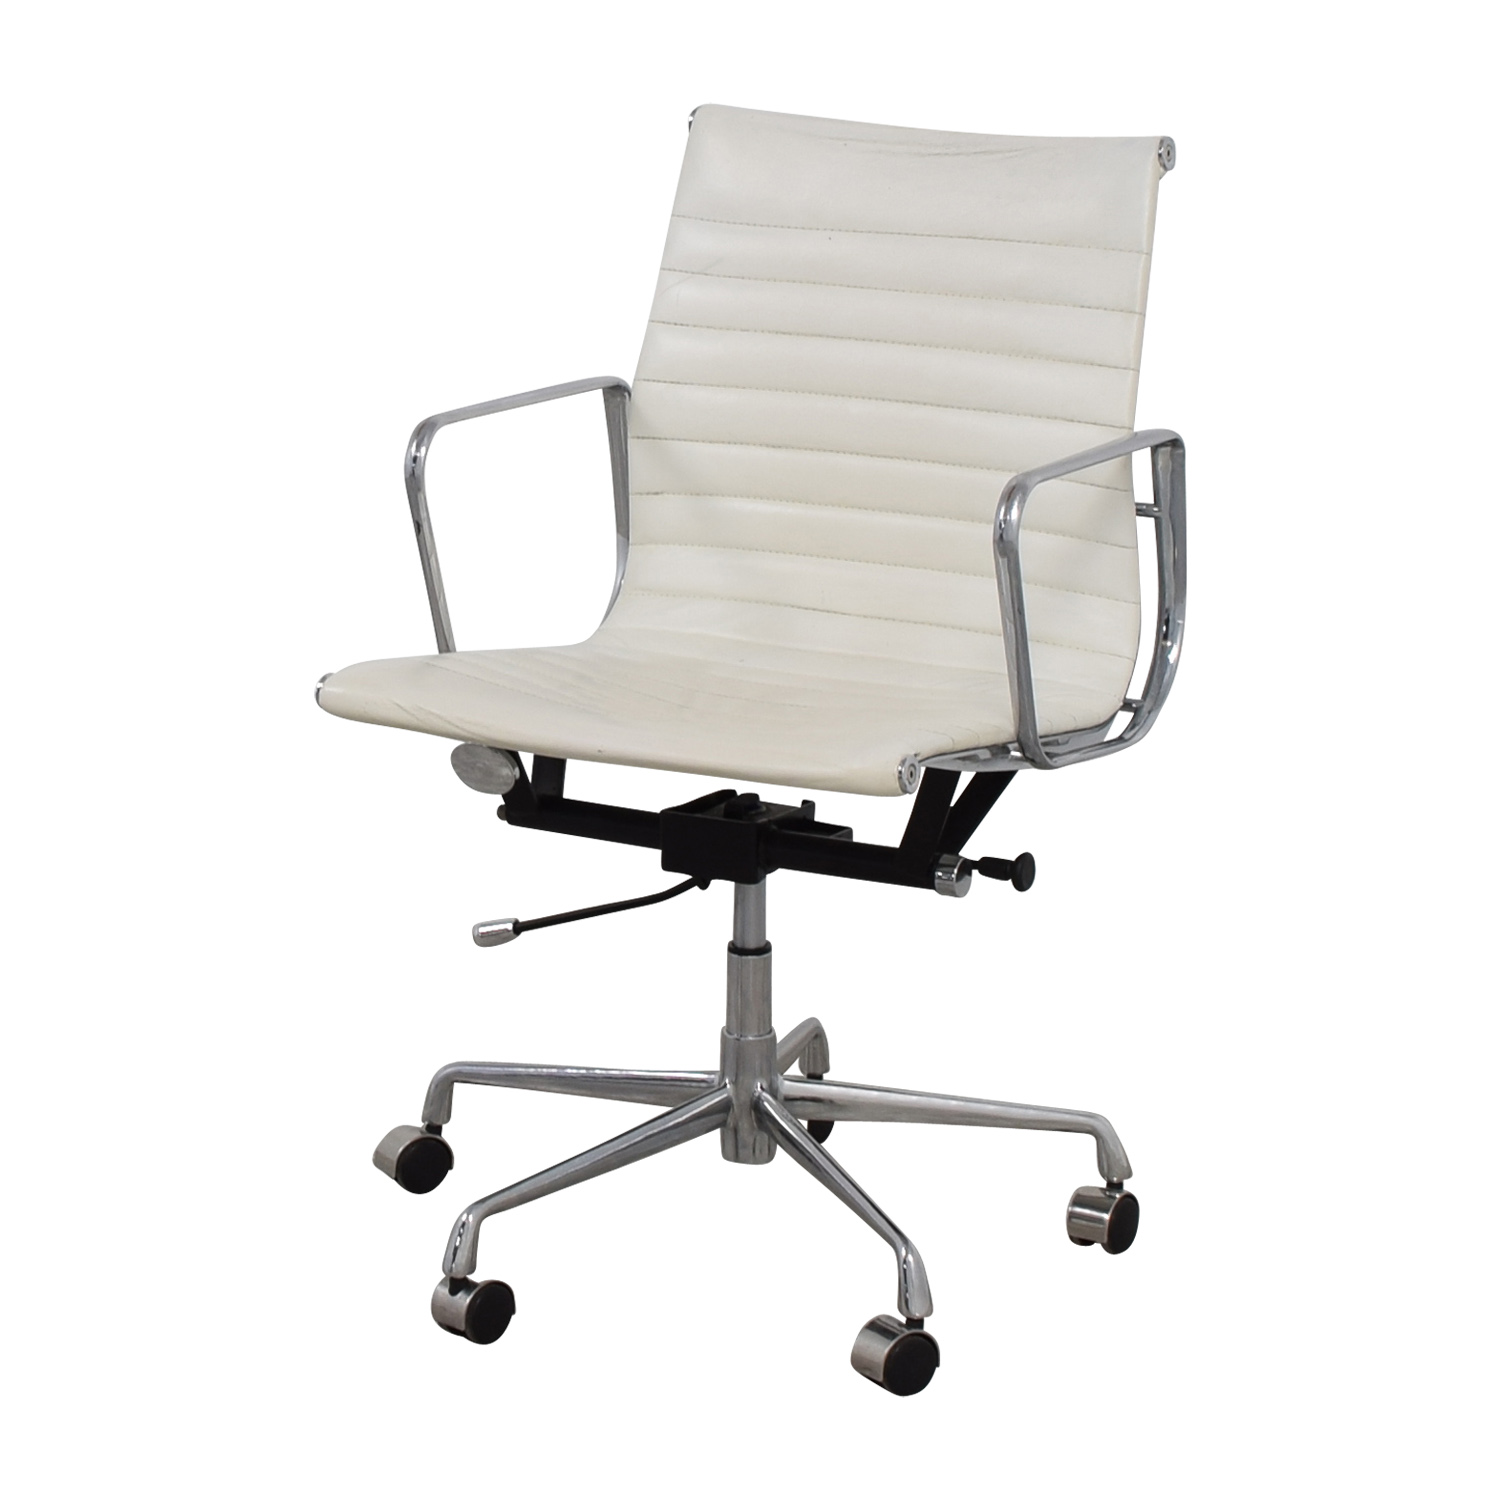 ... CB2 CB2 Eames Style Chair Discount ...